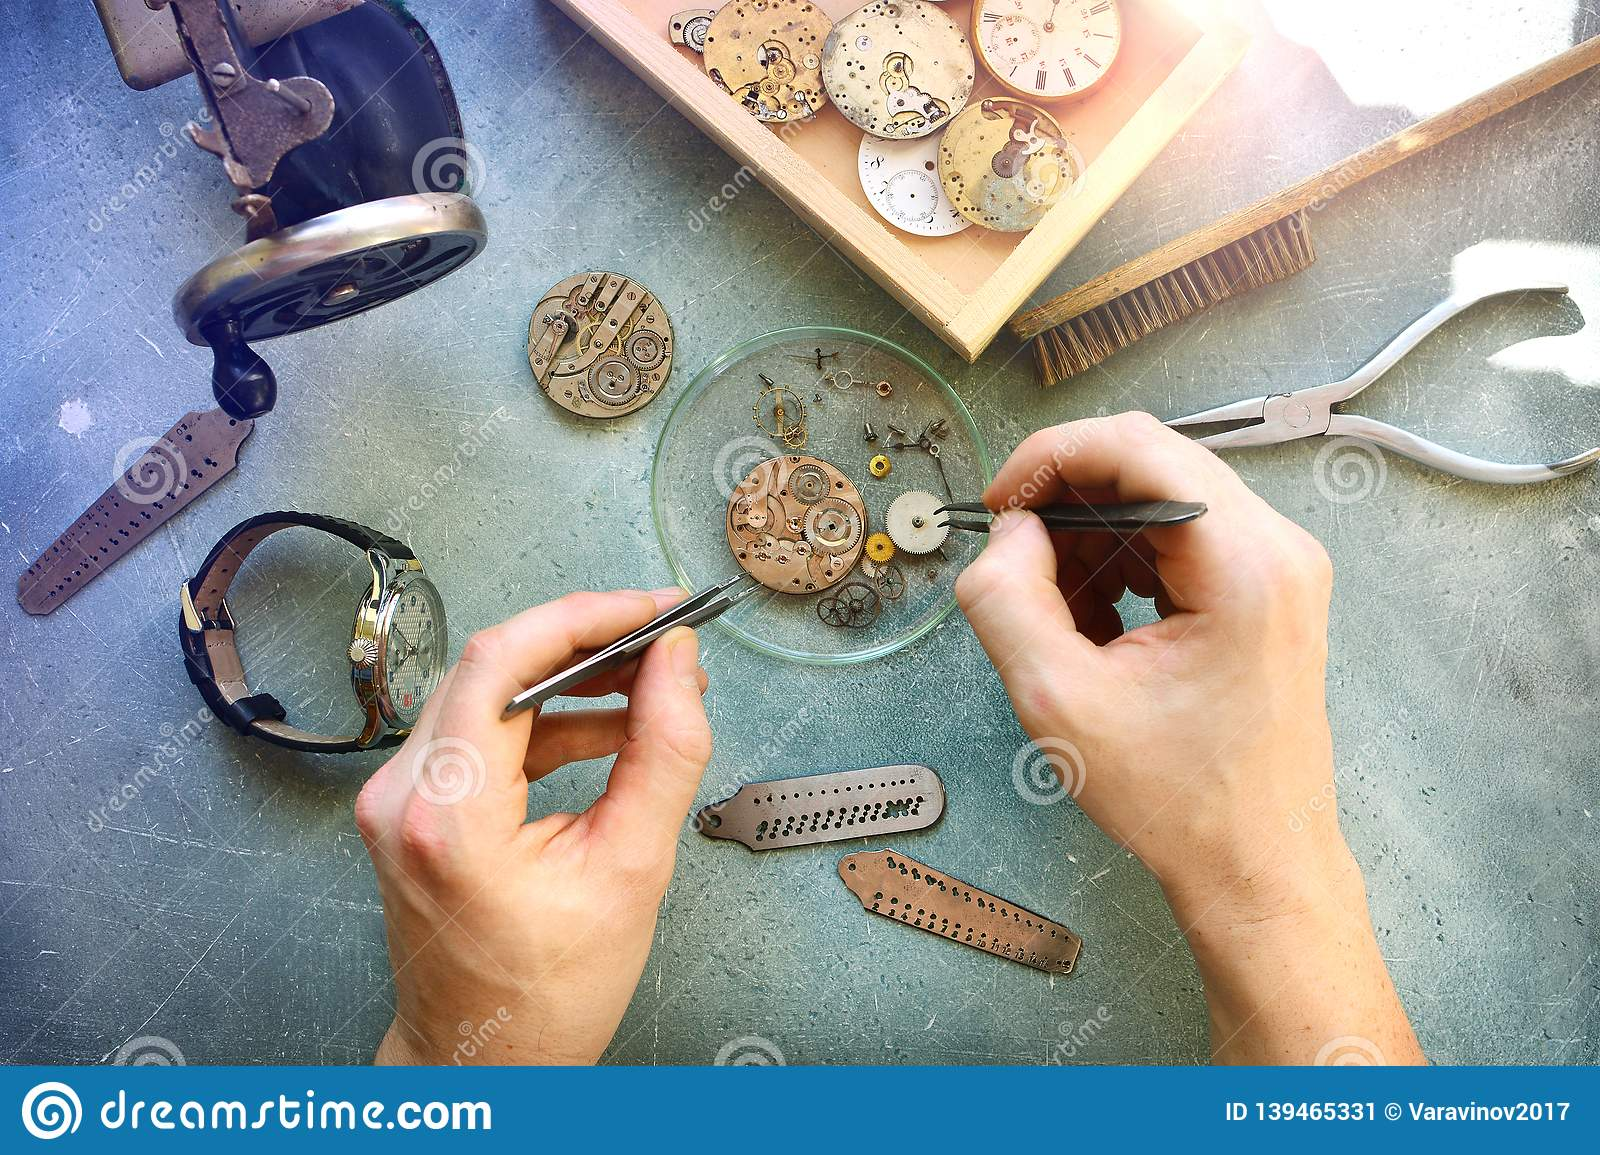 Watchmaker at work in workshop. Flat lay. Workplace of watch repairer. Process of repair mechanical watches.